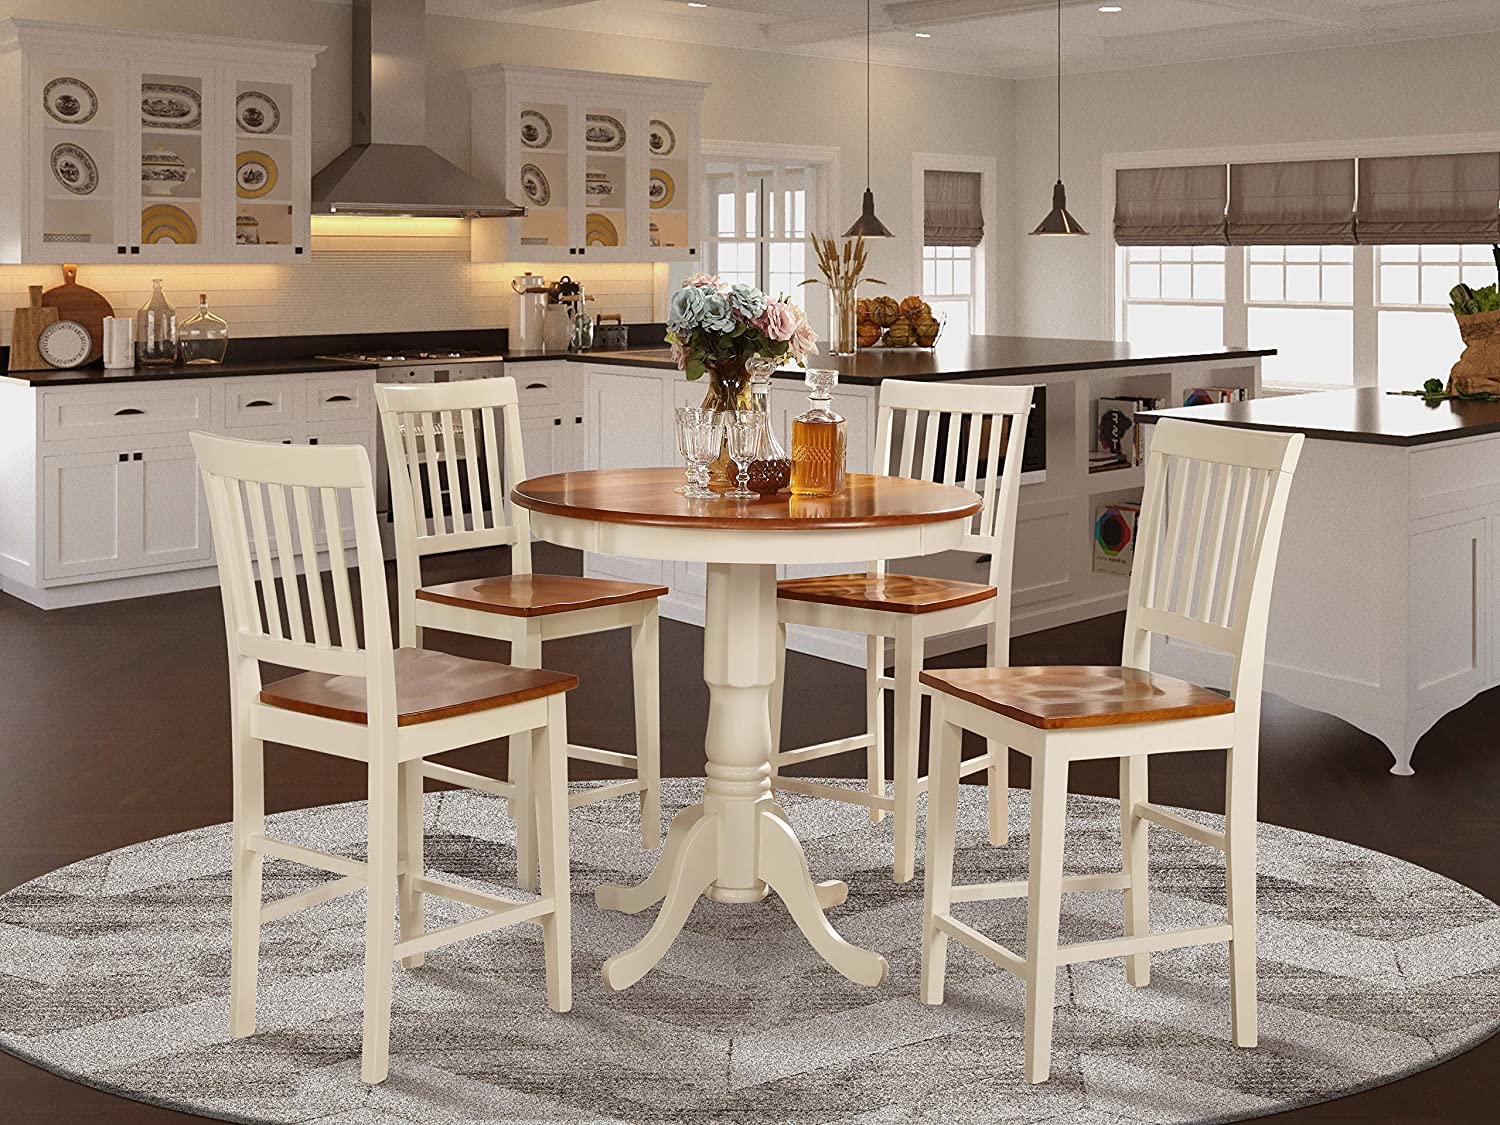 Amazon Com 5 Pc Counter Height Dining Set High Table And 4 Kitchen Chairs Furniture Decor